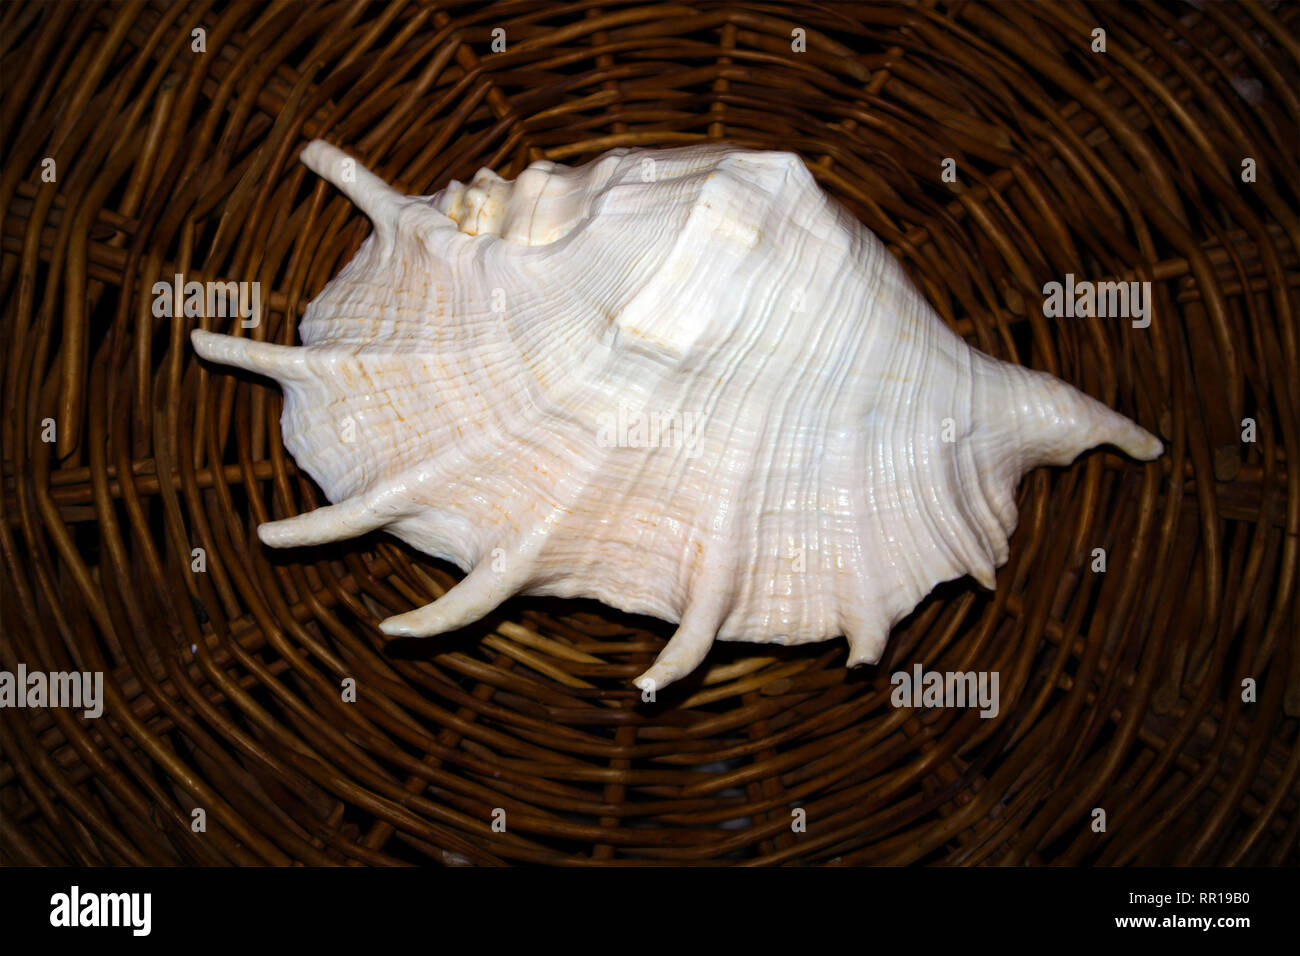 Huge white sea shell with a pearl tone lying on a wicker stand - Stock Image